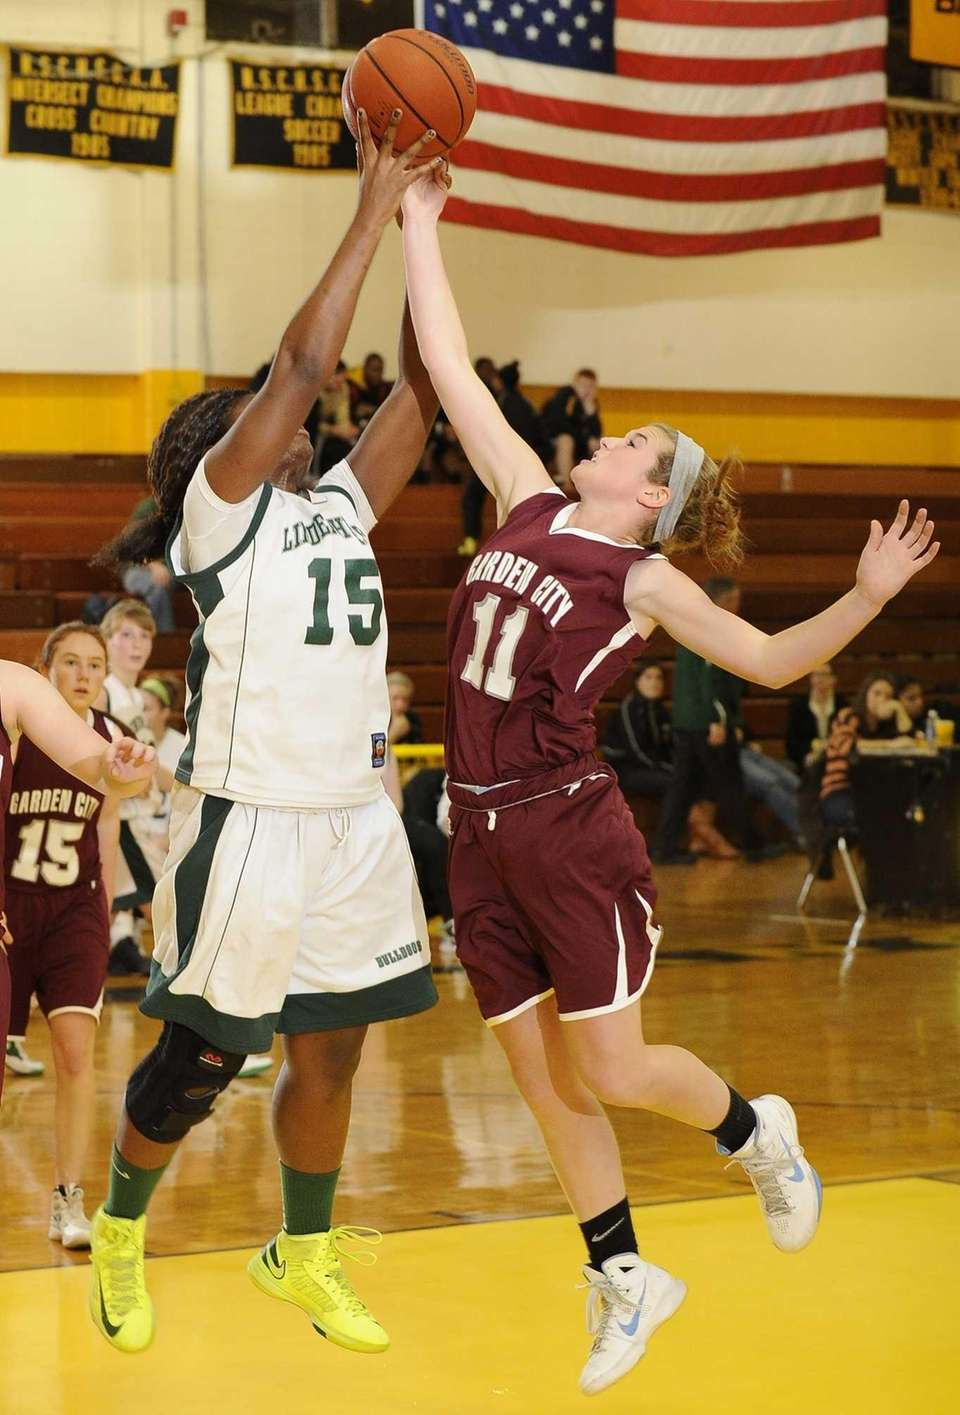 Lindenhurst's Valerie Oyakhilome and Garden City's Kerry Defliese